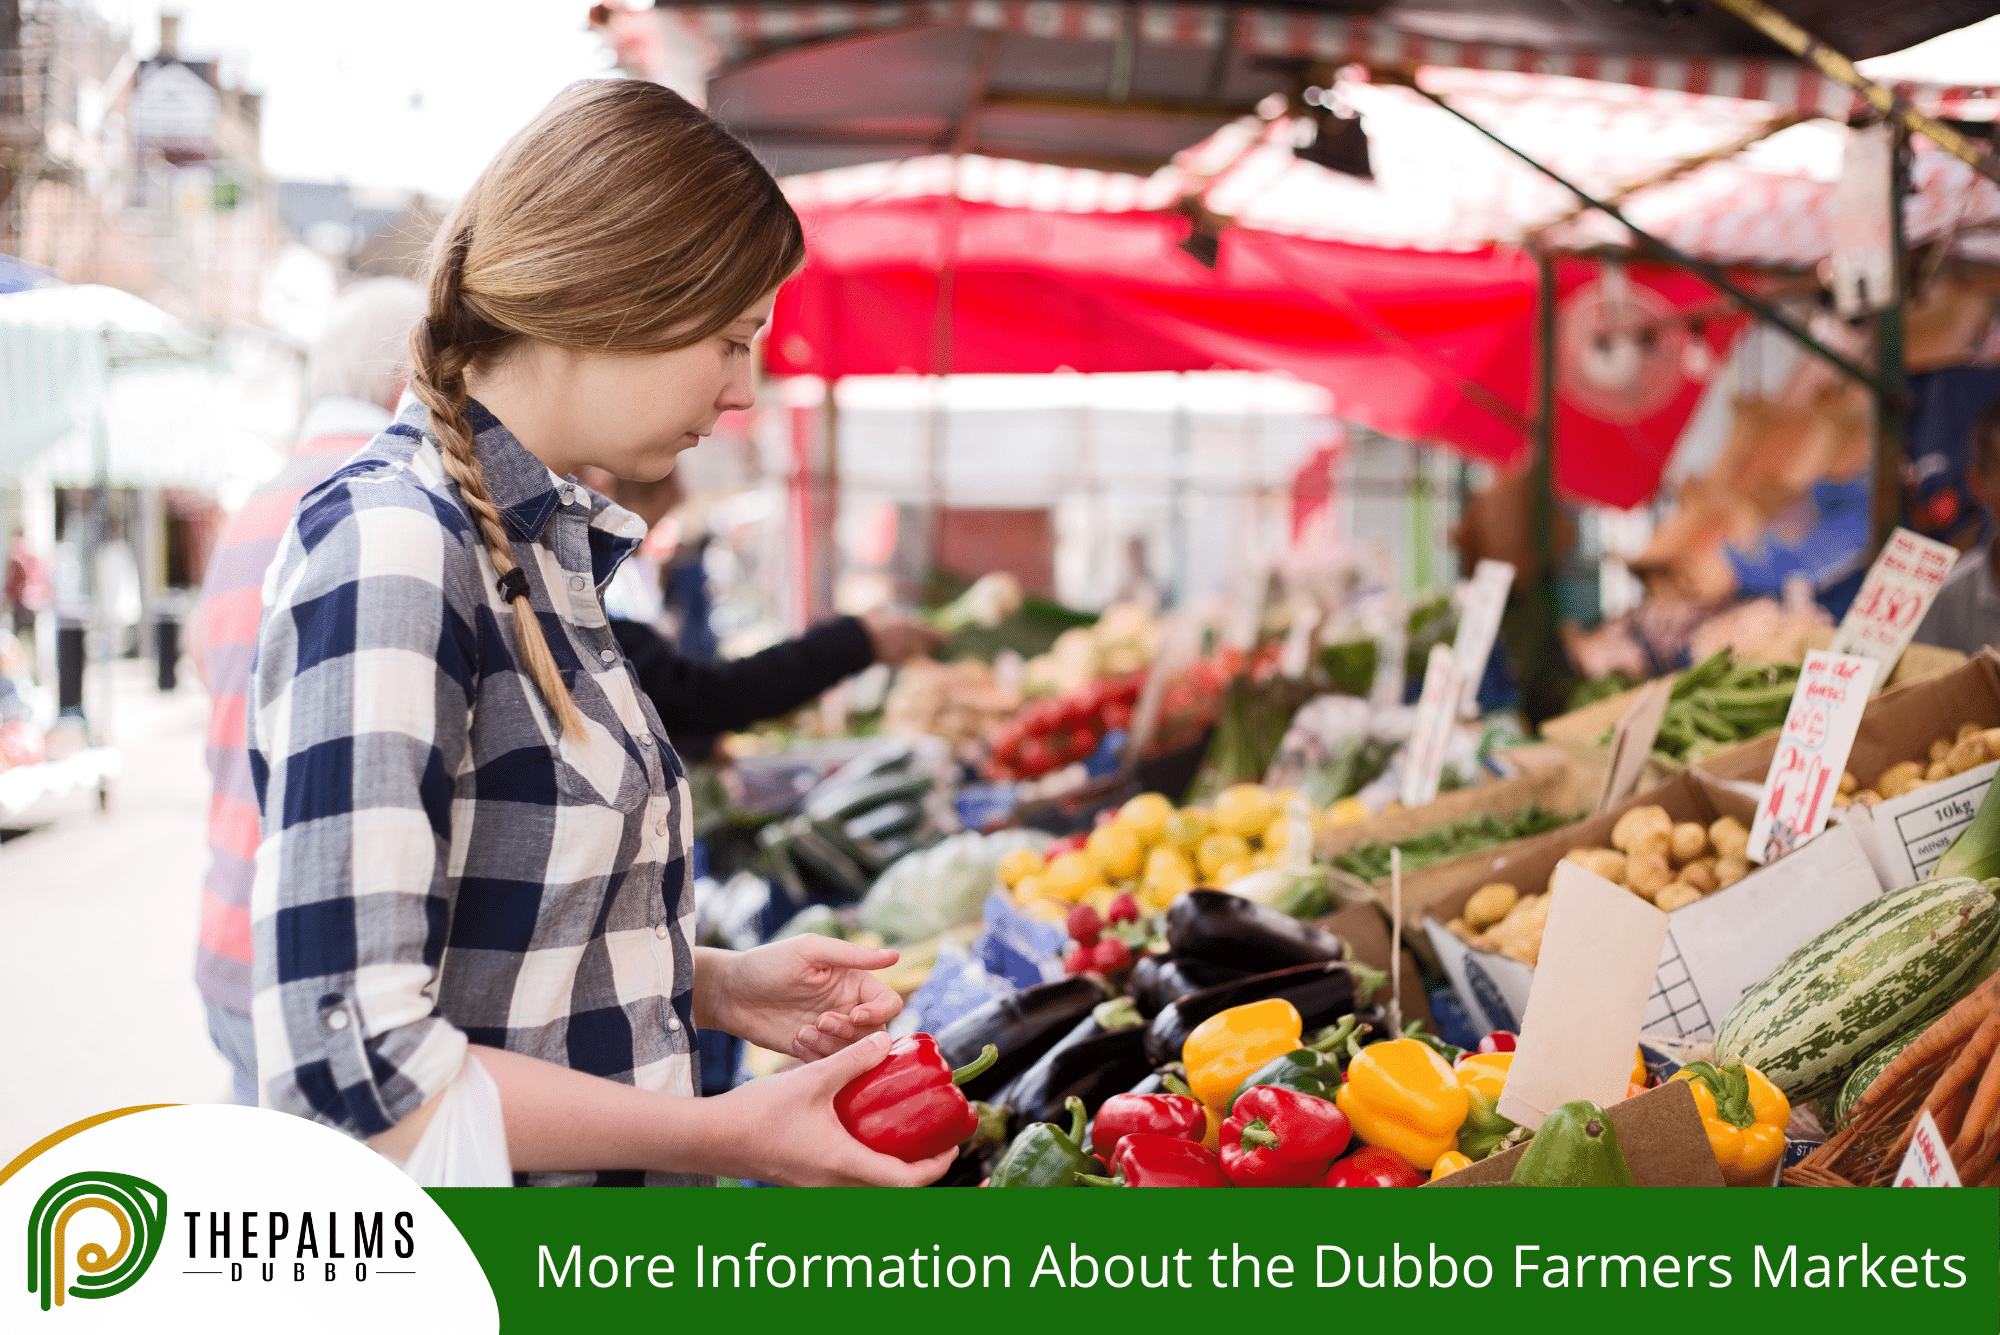 More Information About the Dubbo Farmers Markets